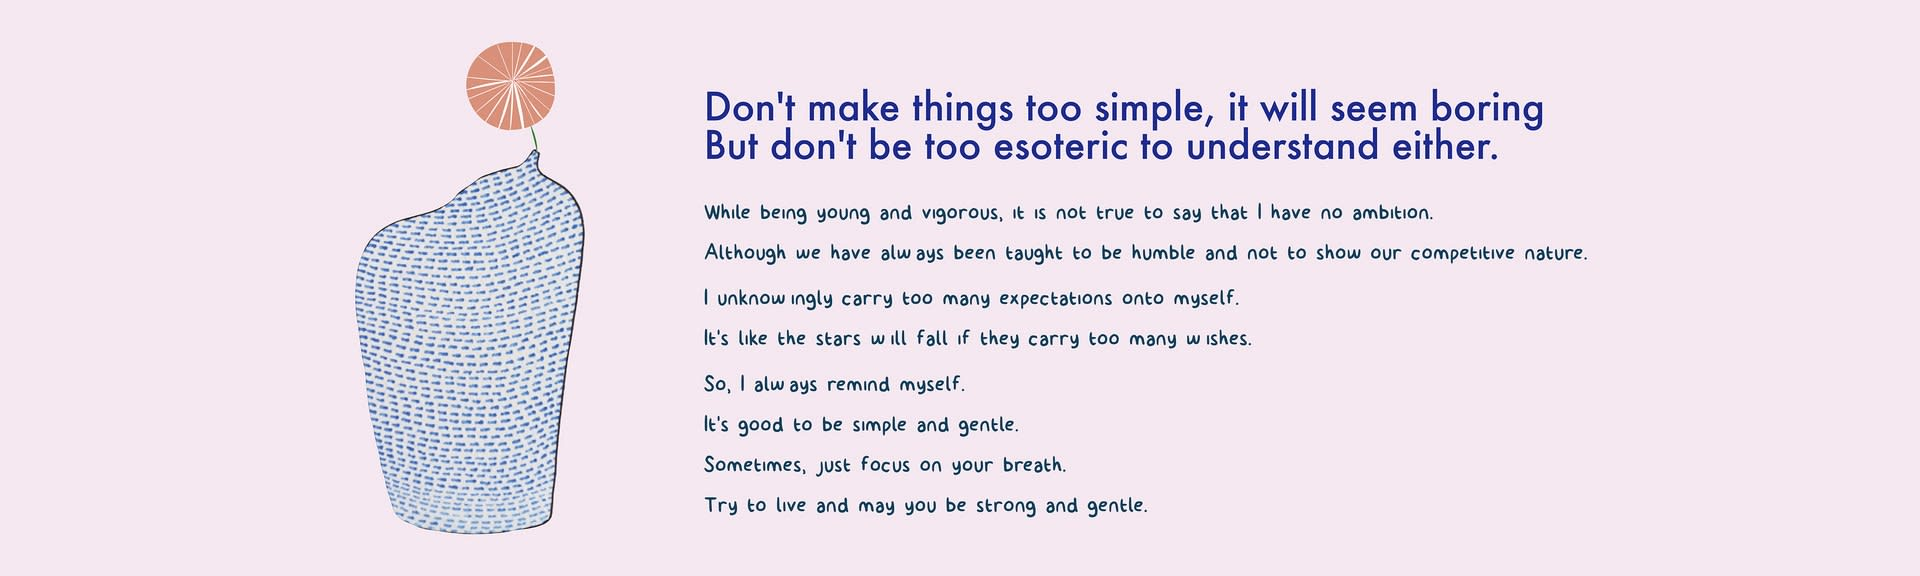 Don't make things too simple, it will seem boring.